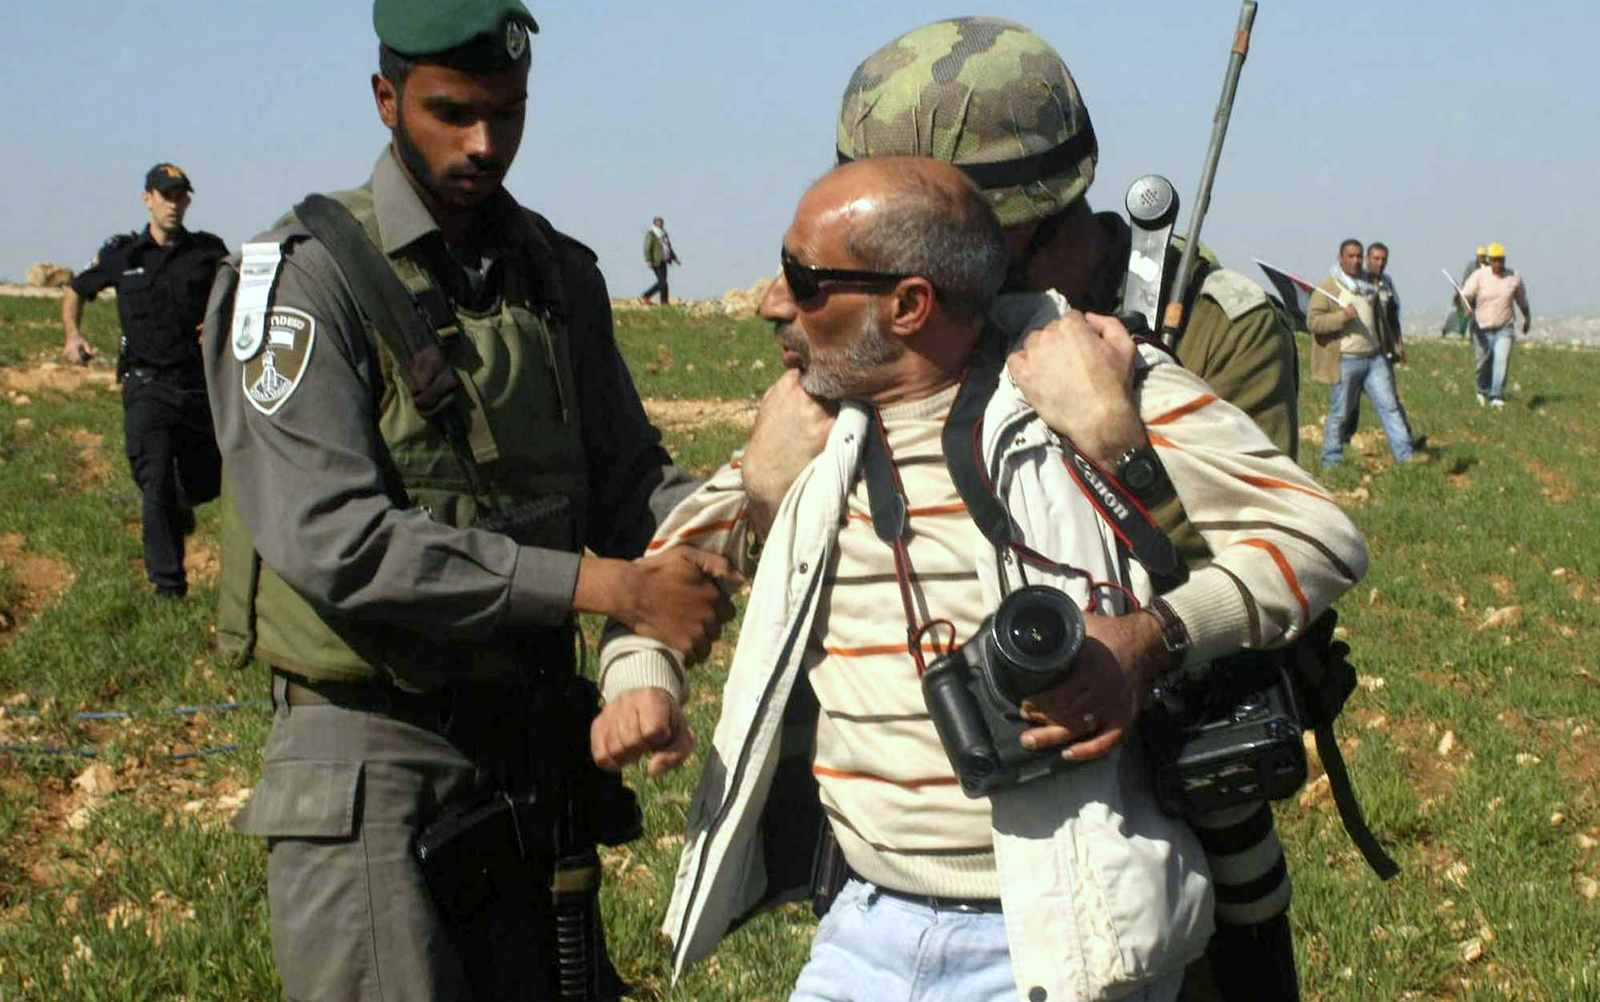 Israeli security detain The Associated Press photographer Nasser Shiyoukhi during a Palestinian protest in Yatta in the West Bank on Saturday. Shiyoukhi was released without charge after Saturday's incident. (photo credit: AP Photo)